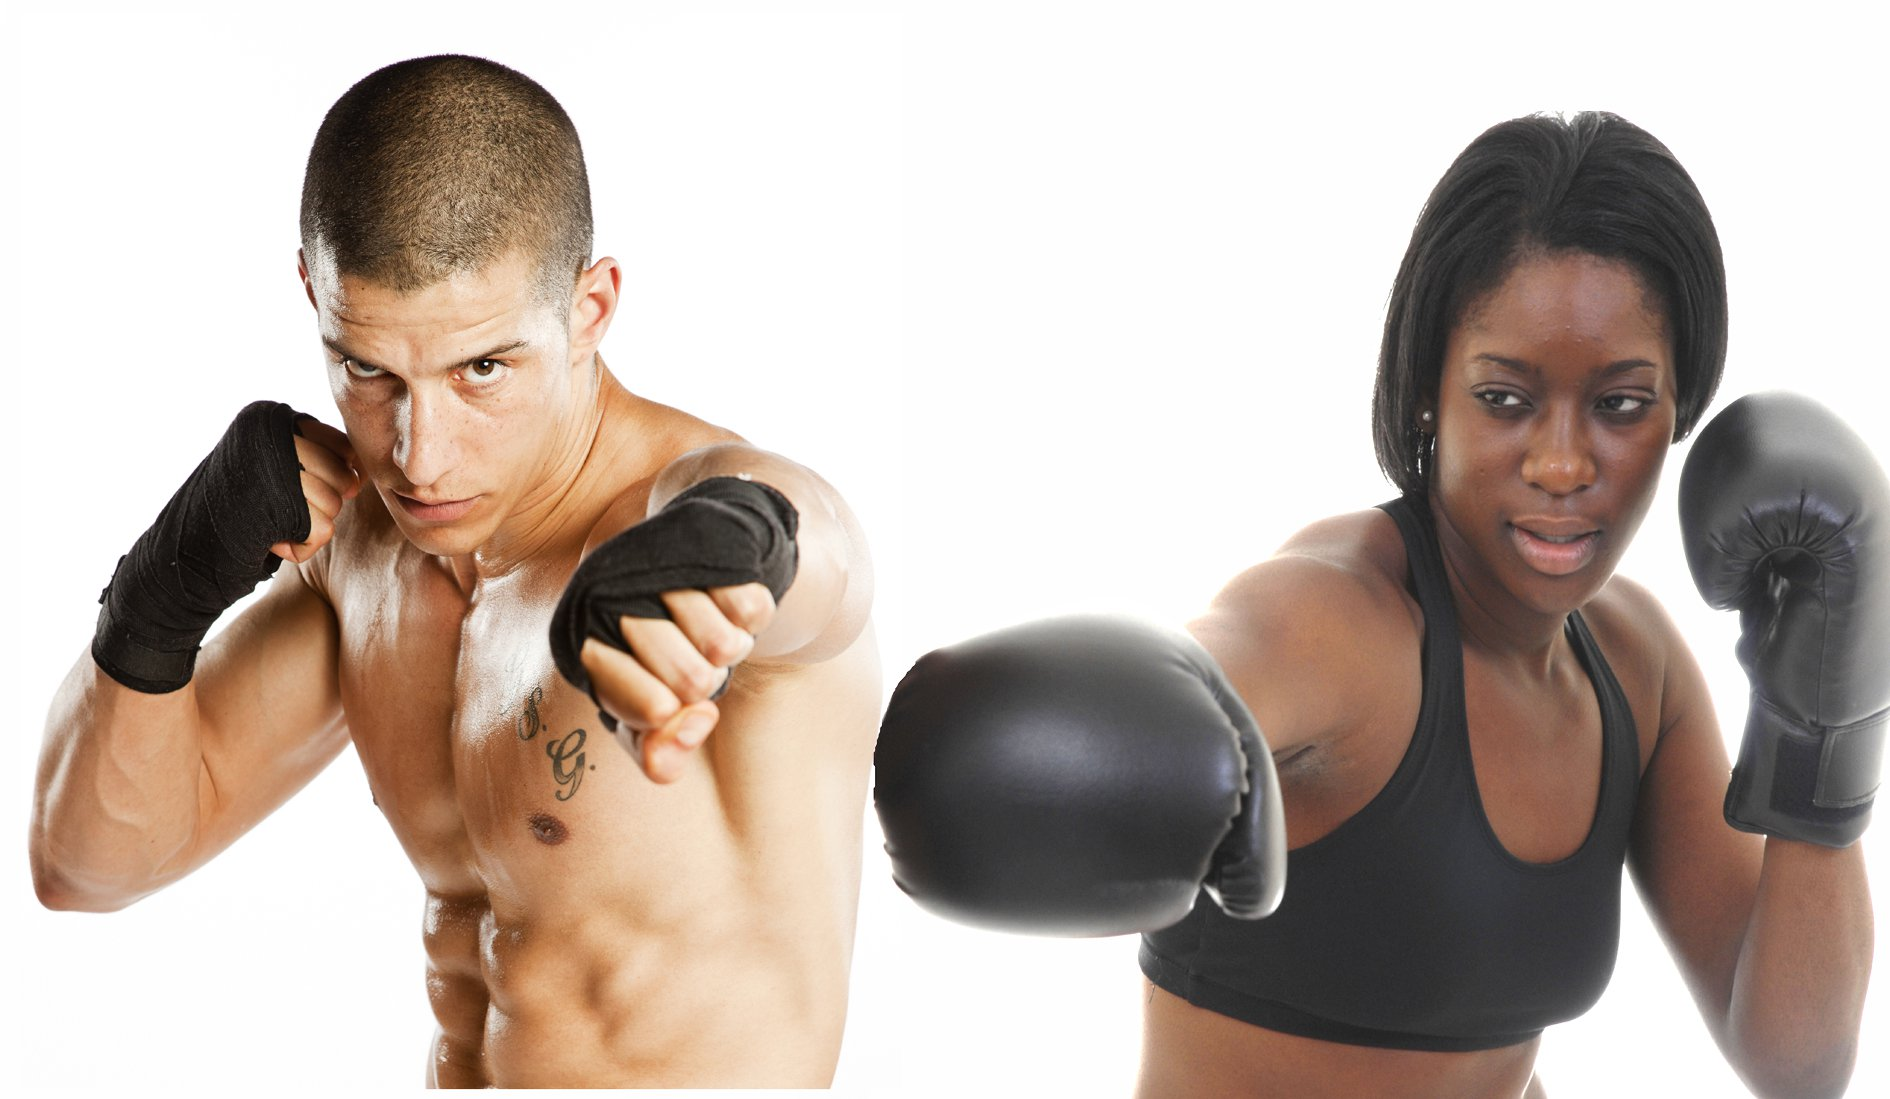 OFFERED: Change your life today with Elite Martial Arts Fitness training at your CONDO